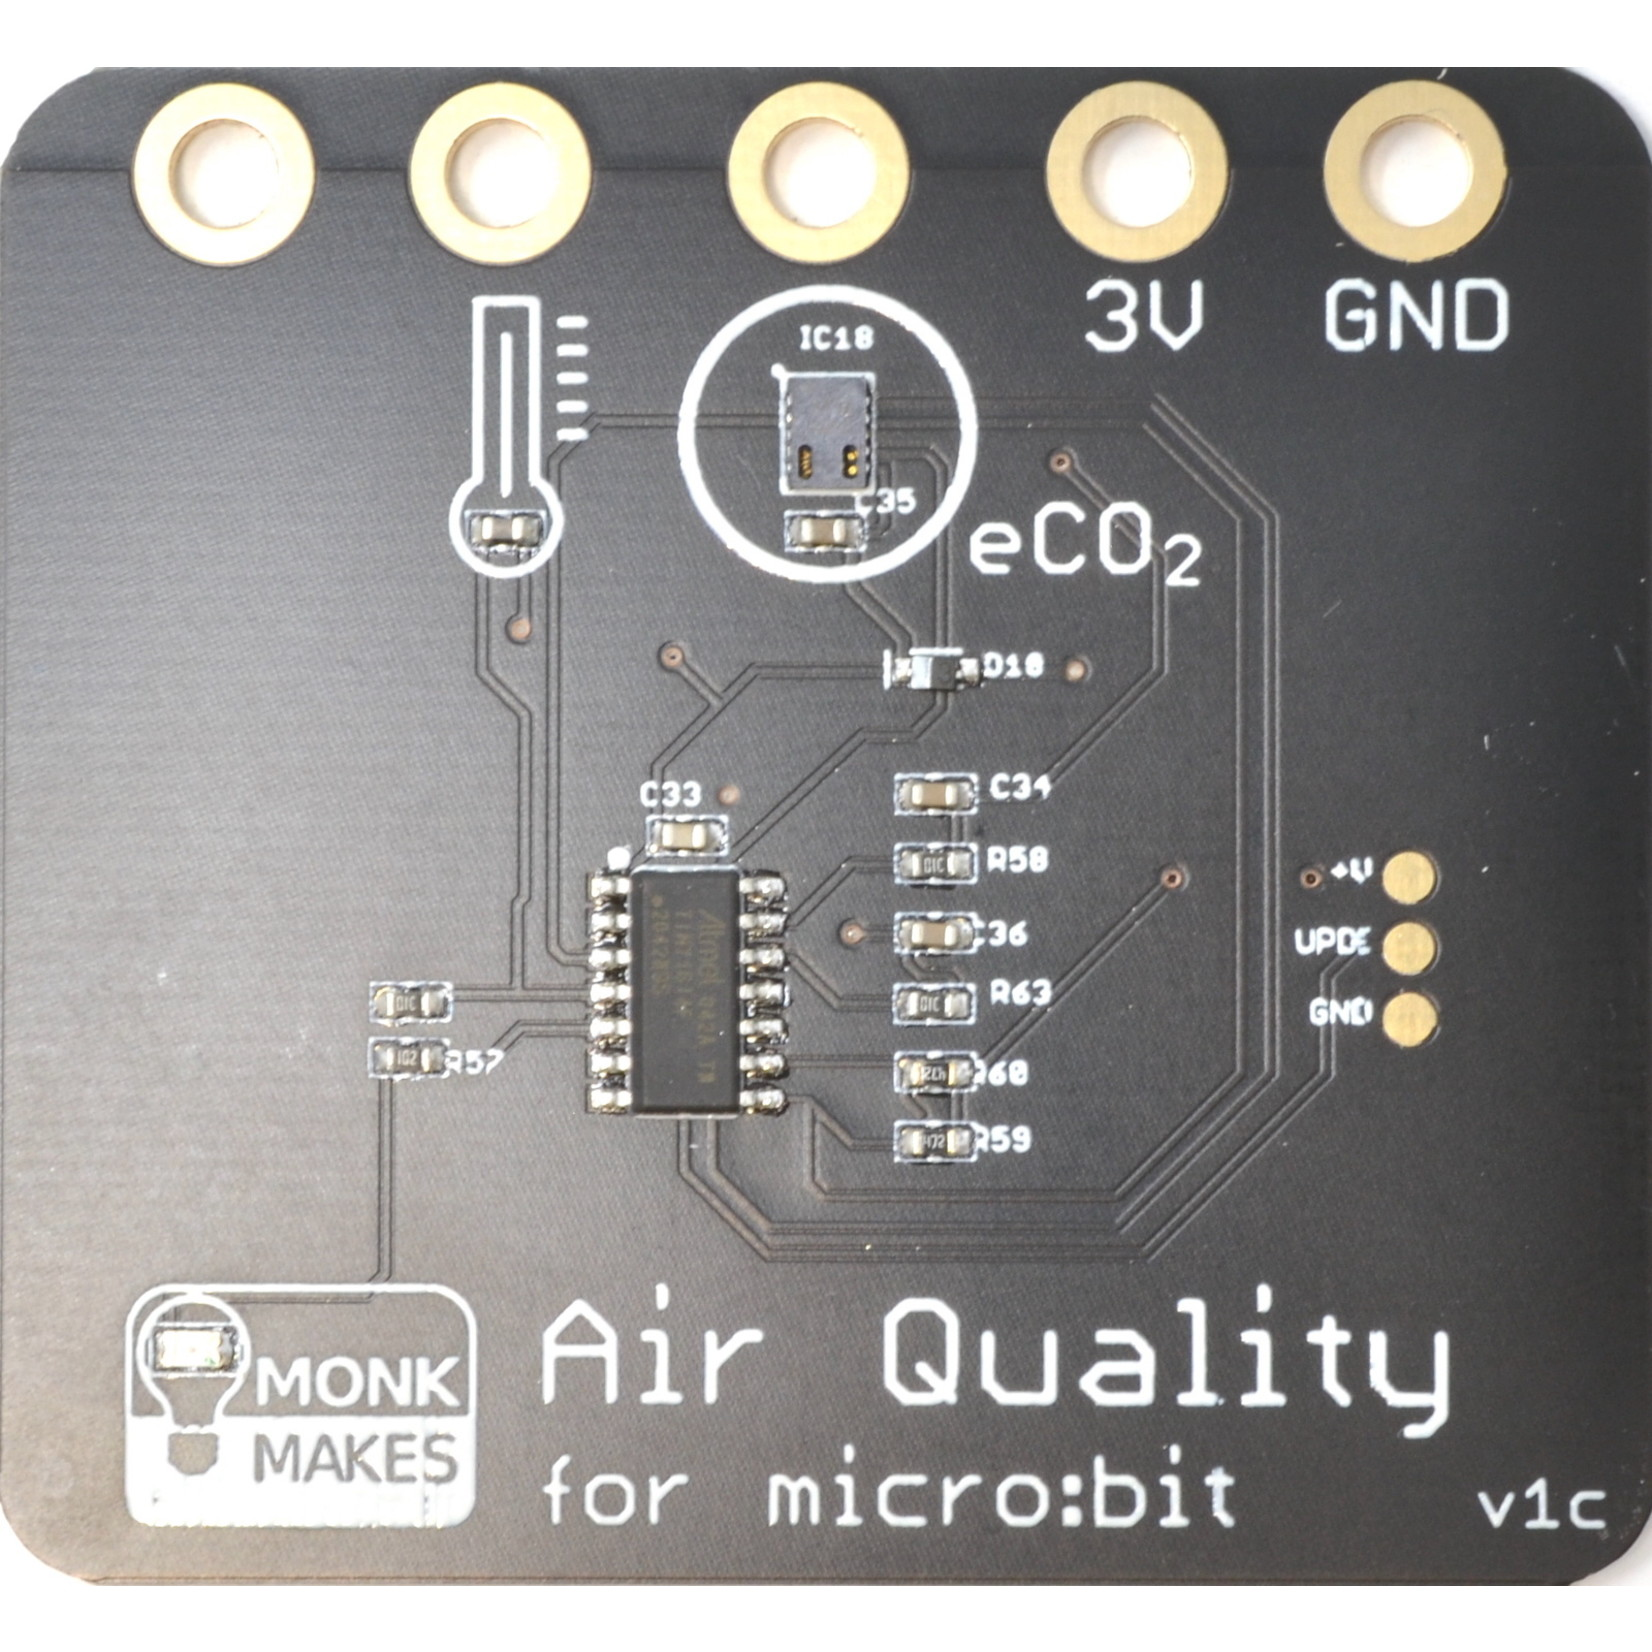 MonkMakes Air Quality Kit for micro:bit